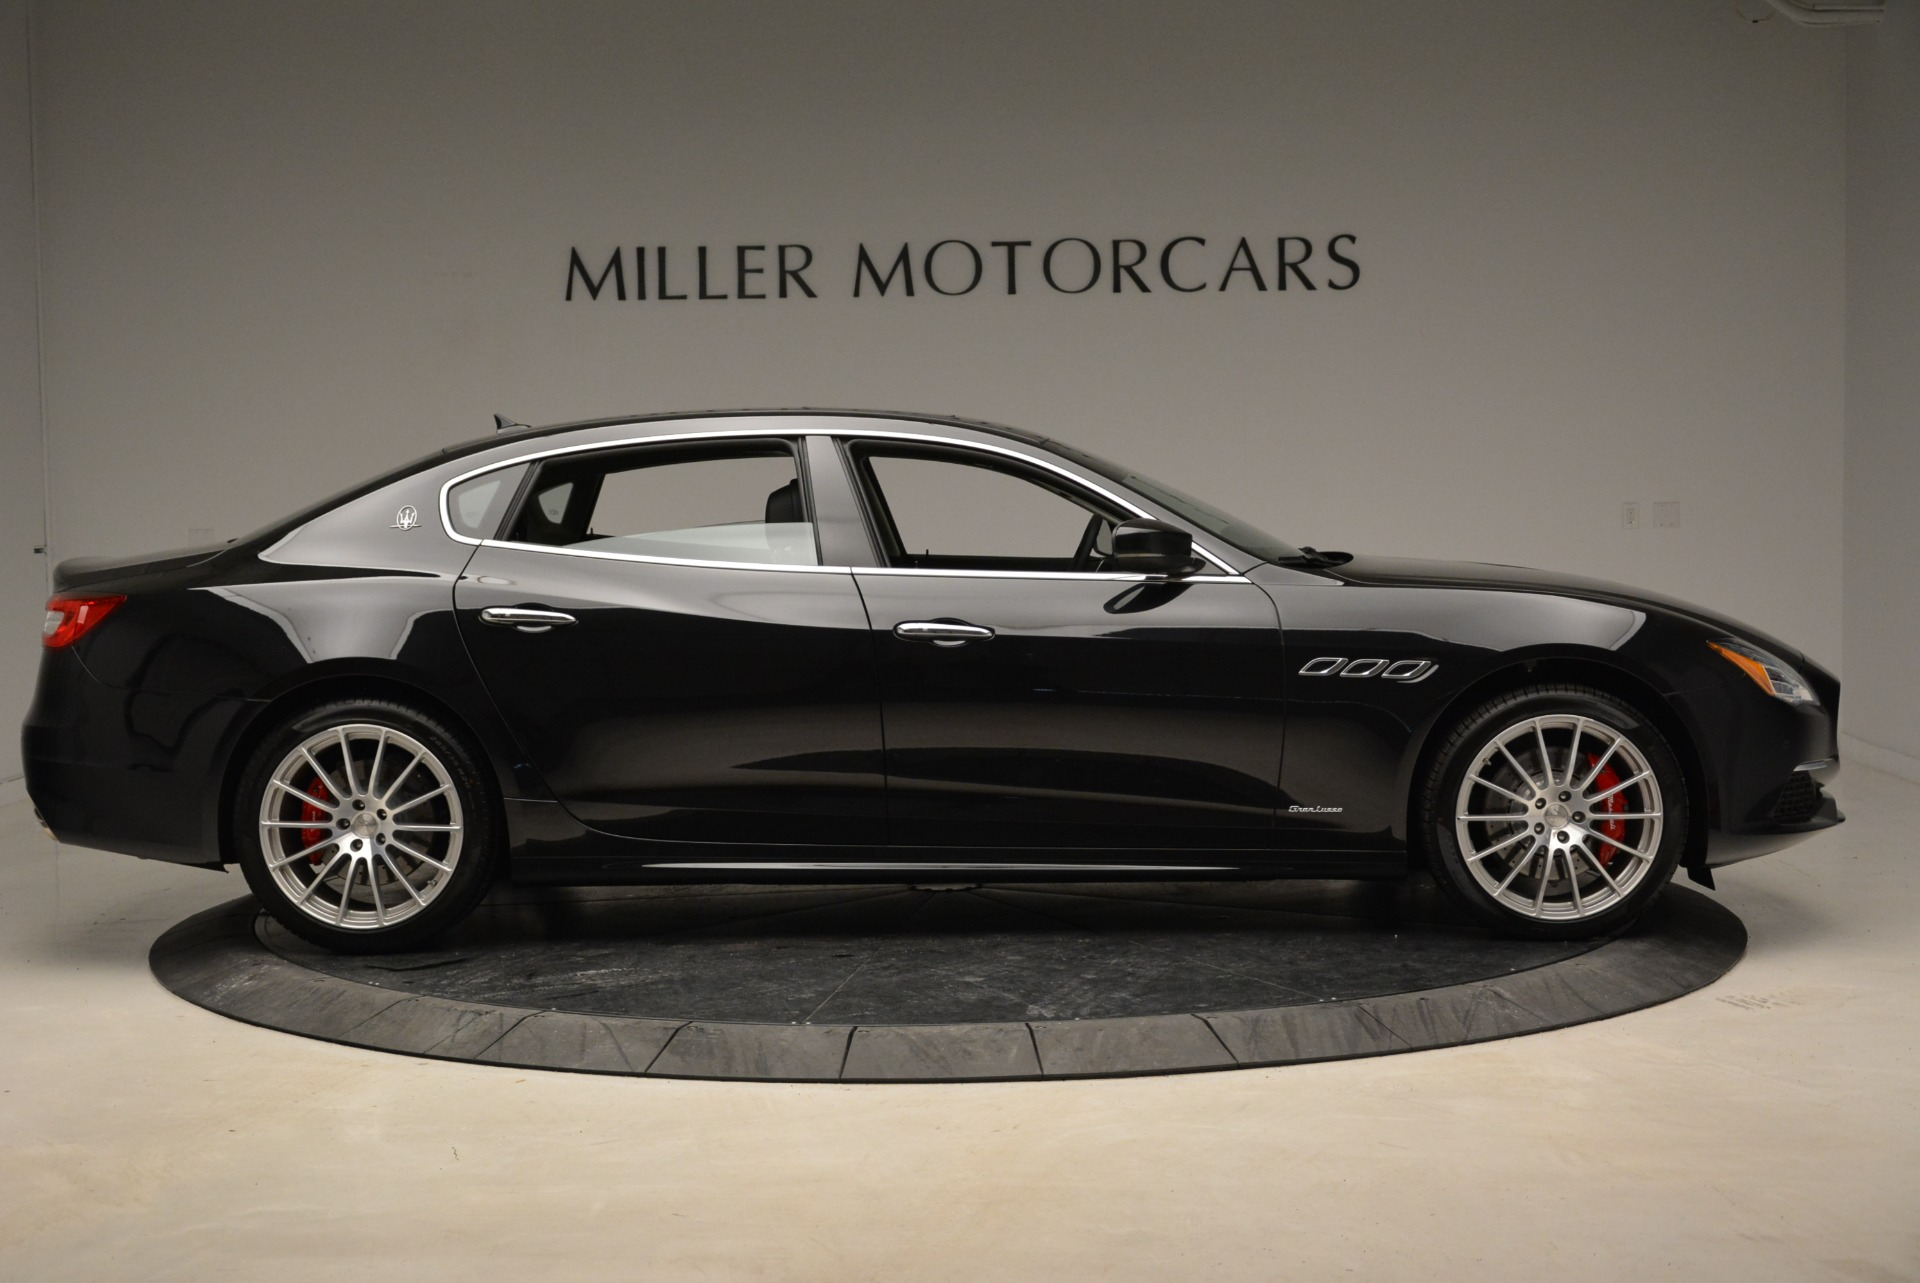 New 2018 Maserati Quattroporte S Q4 GranLusso For Sale In Greenwich, CT 1705_p9